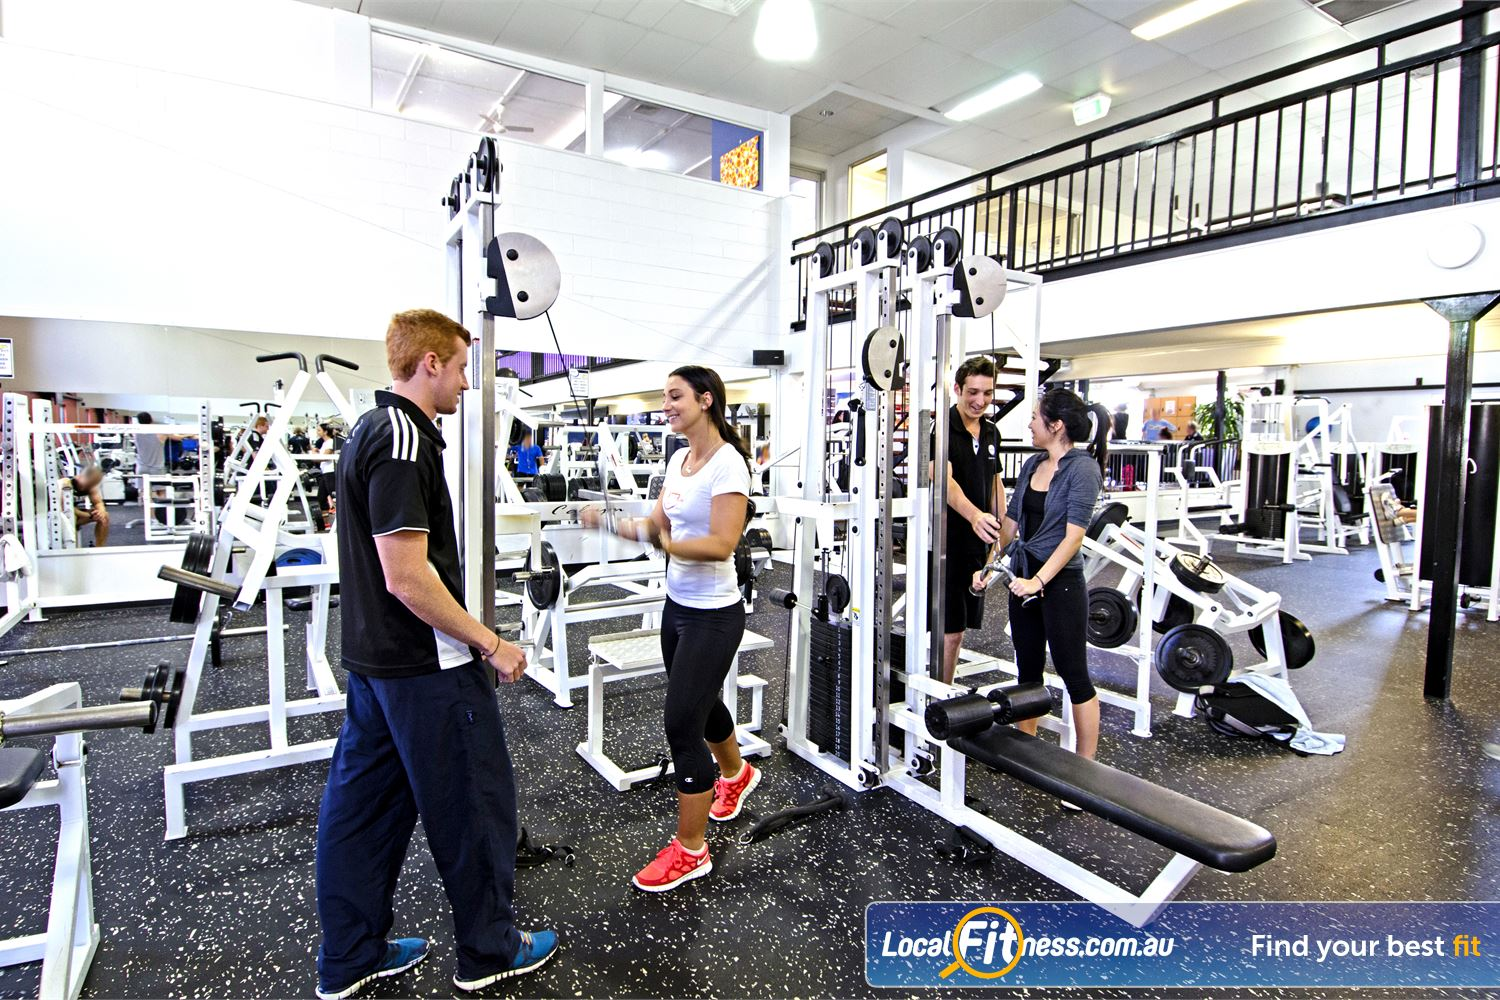 Goodlife Health Clubs Near Tennyson Ask our personal trainers for help and advice to improve your results.